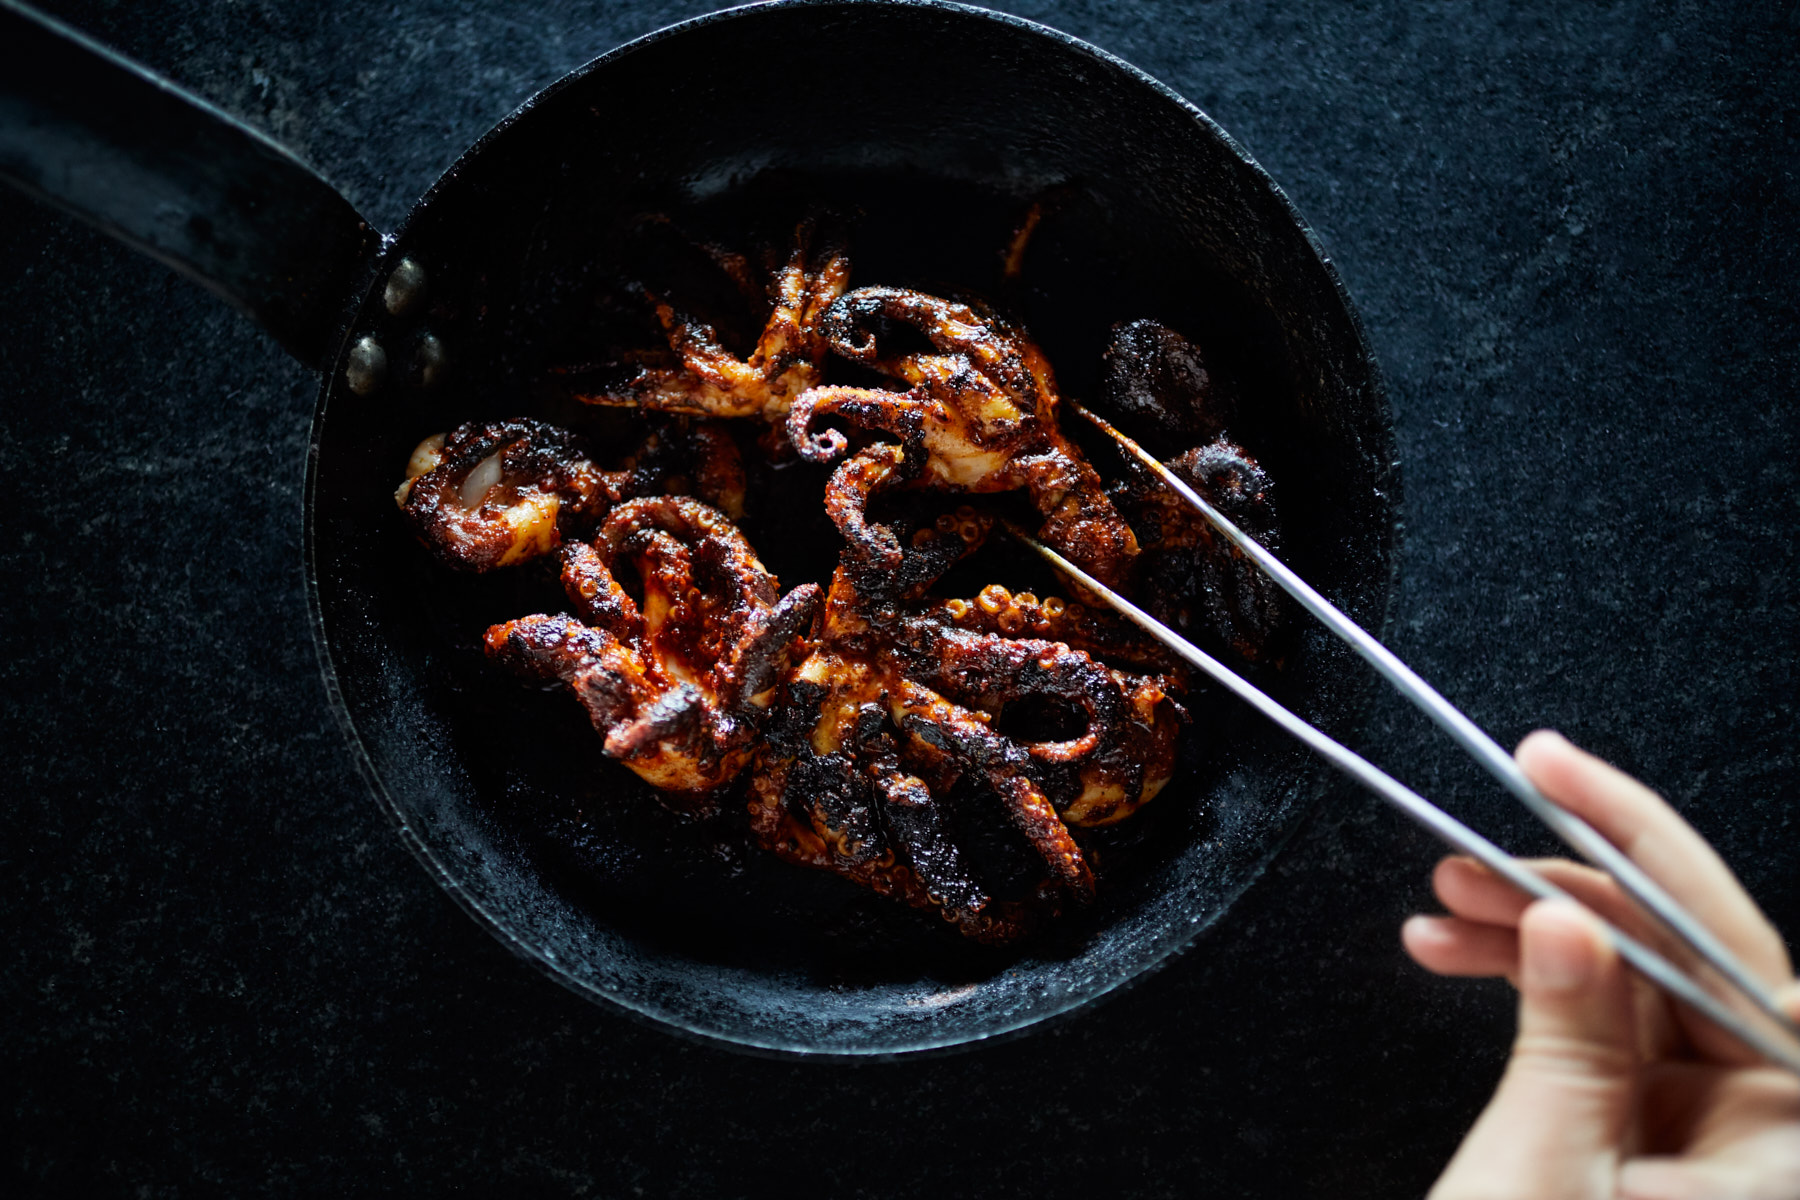 Jody Horton photographs A skillet of grilled octopus